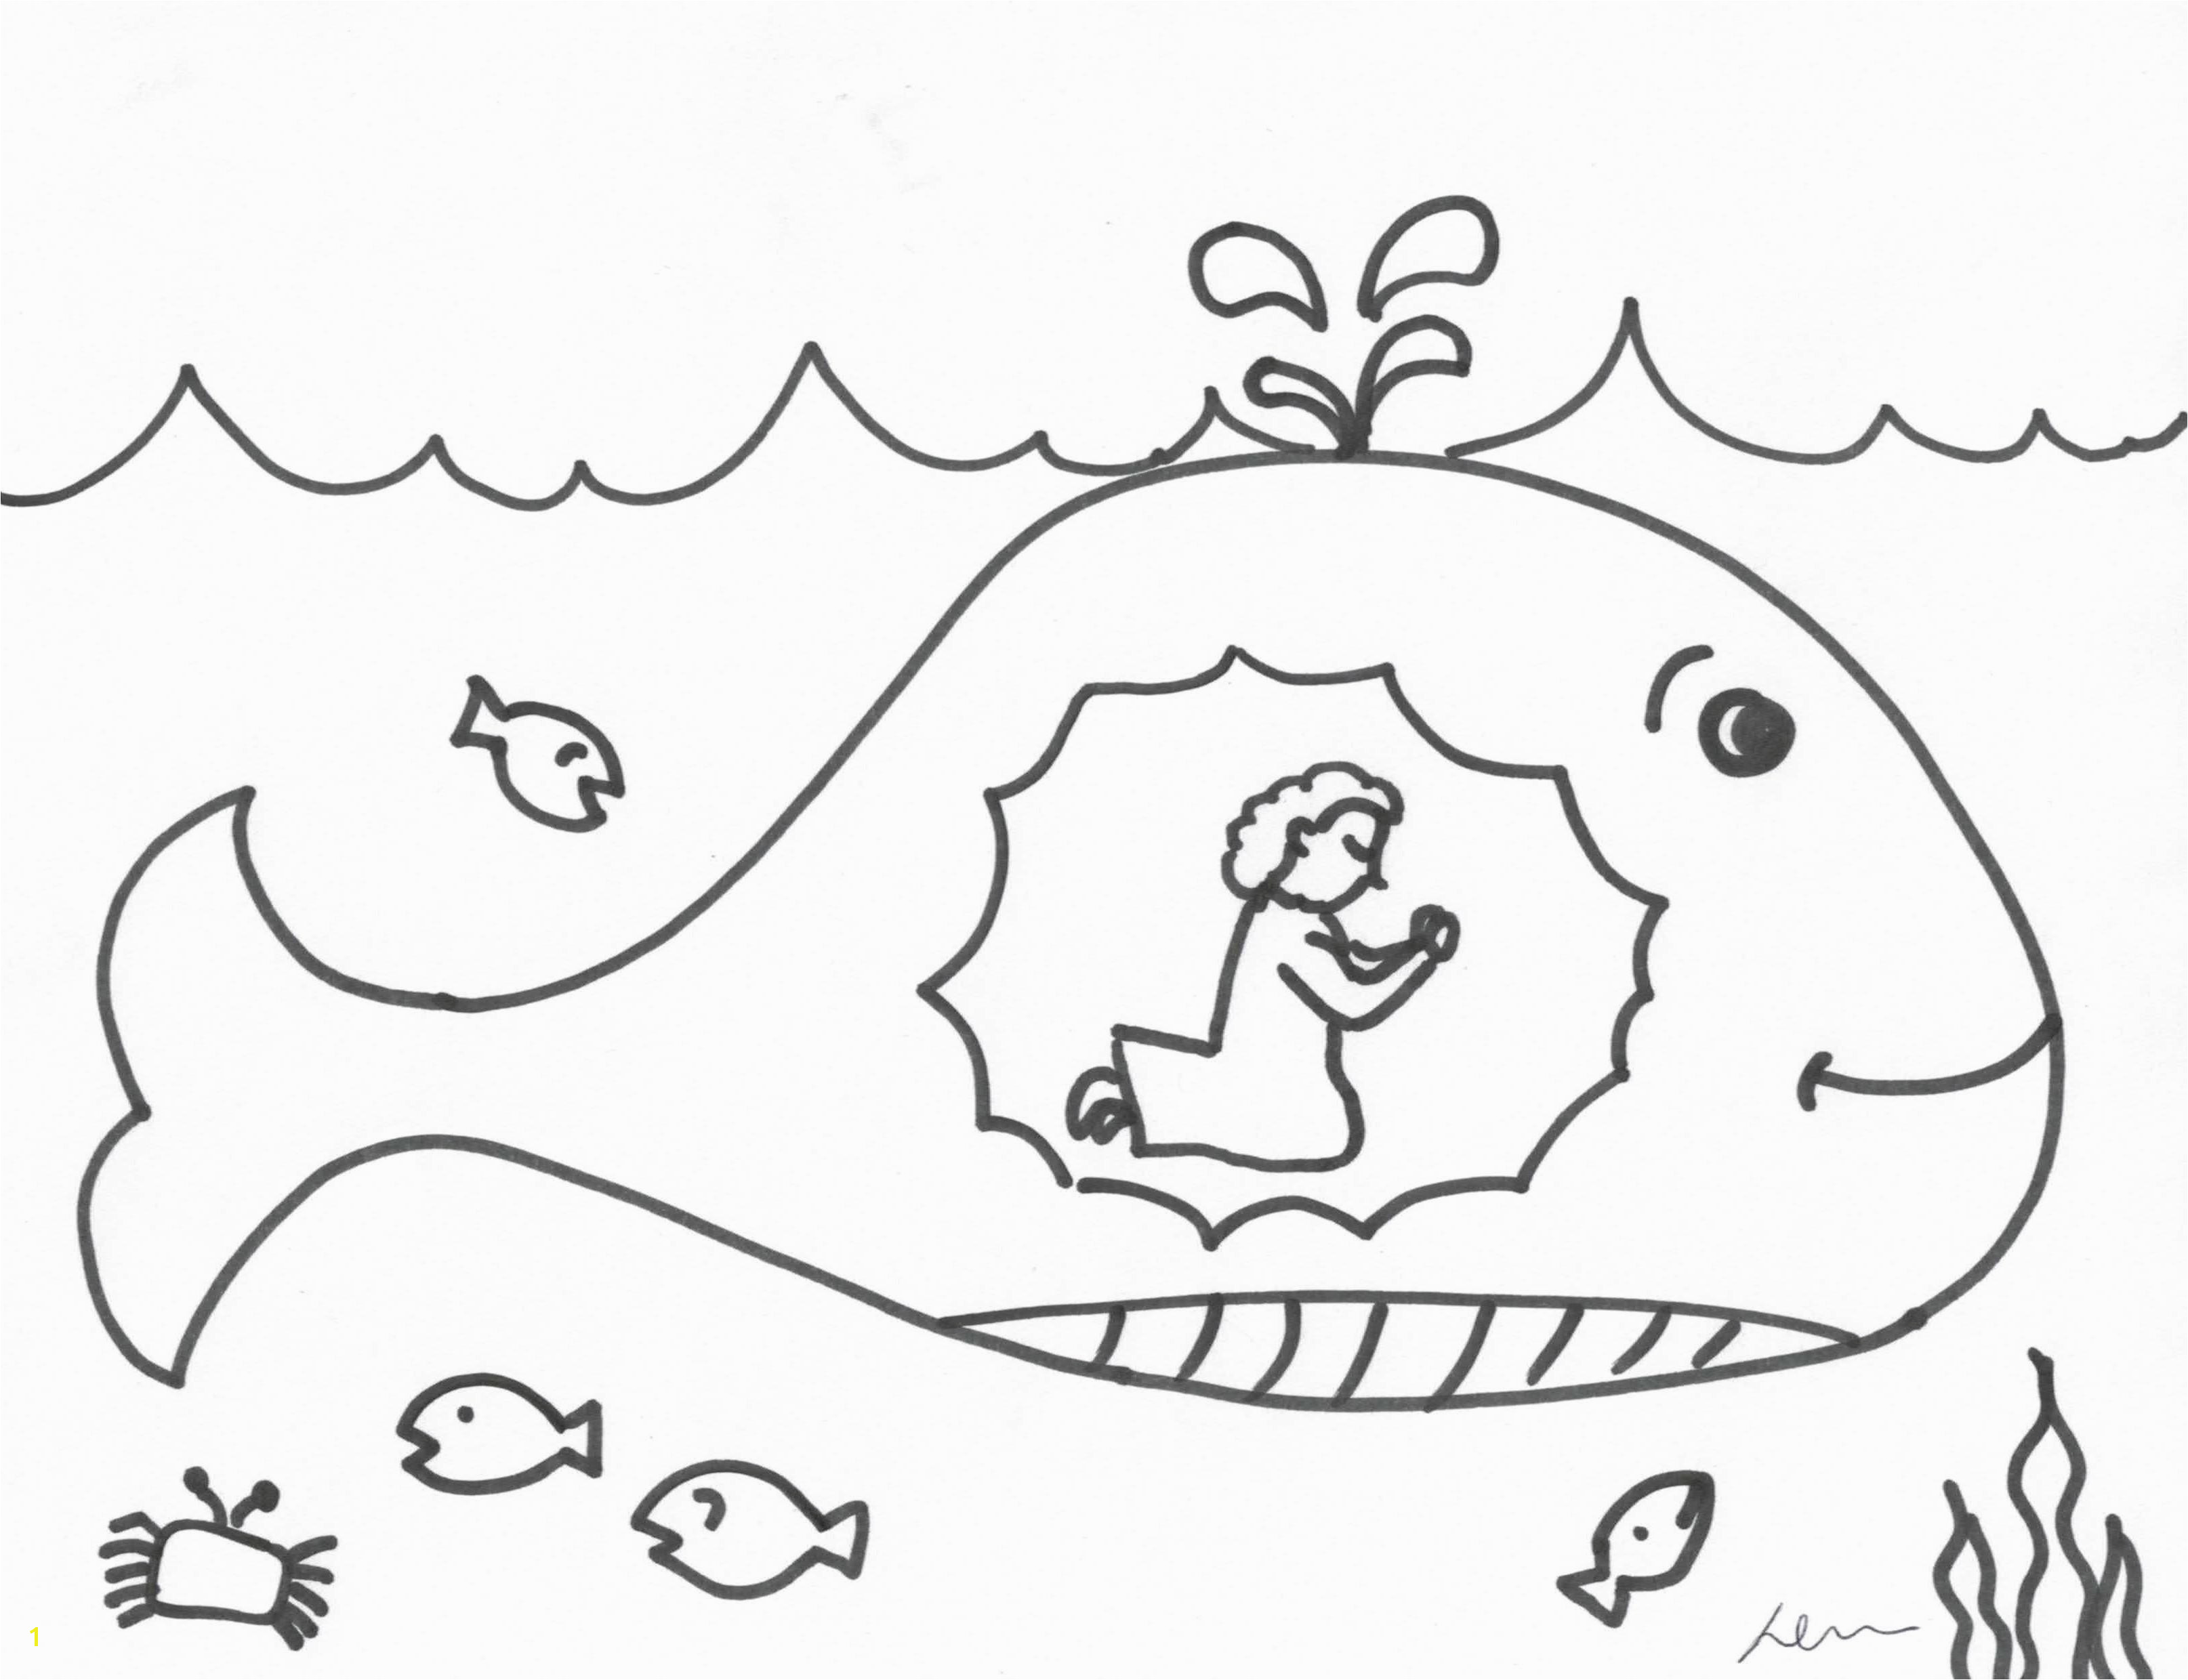 Jonah And The Whale Coloring Pages For Jonah And The Whale Coloring Pages For Great